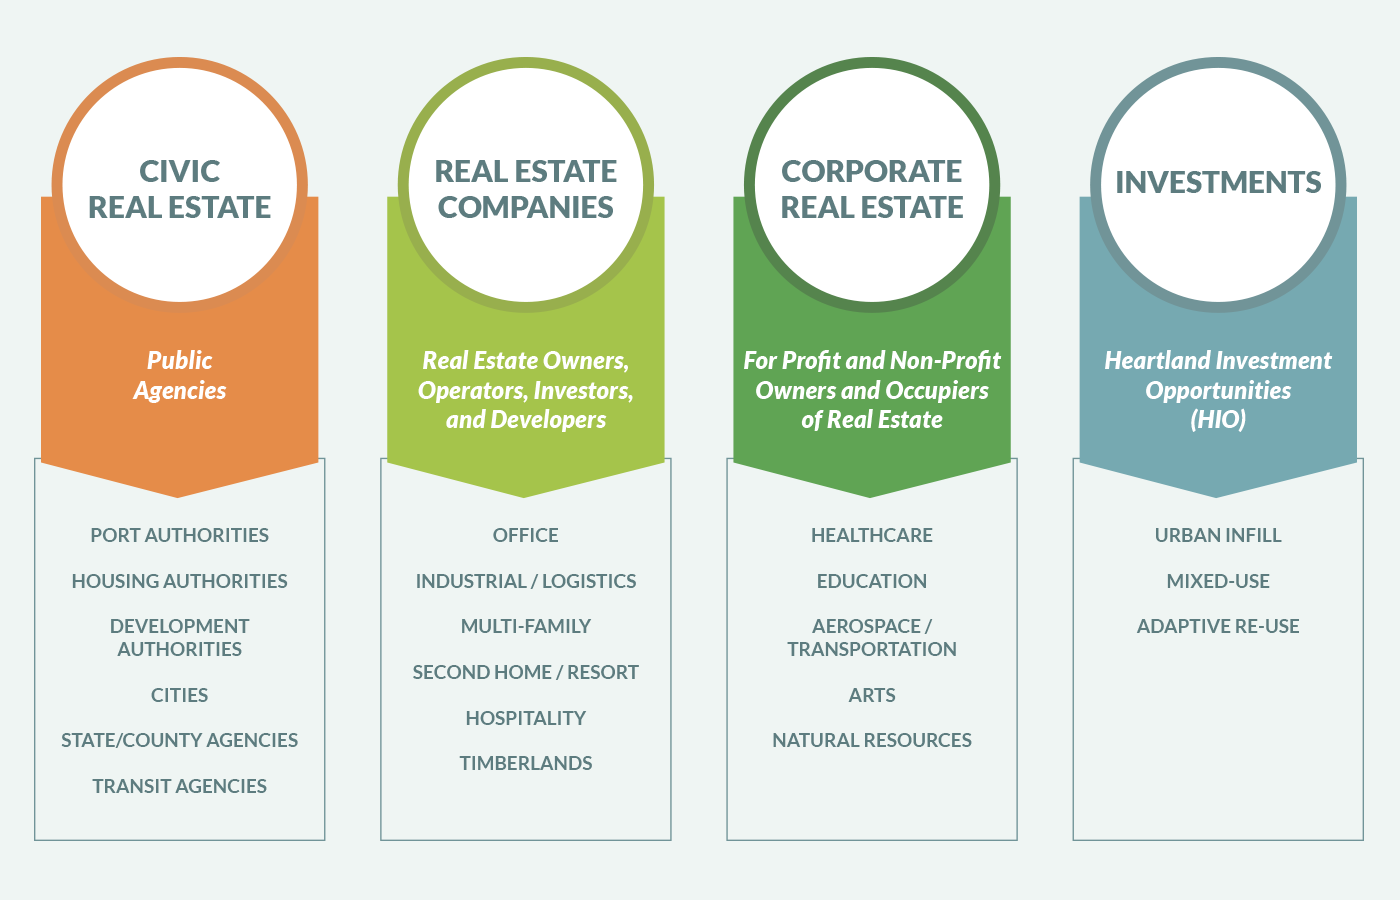 Heartland Practice Areas, Civic Real Estate, Real Estate Companies, Corporate Real Estate, Investments